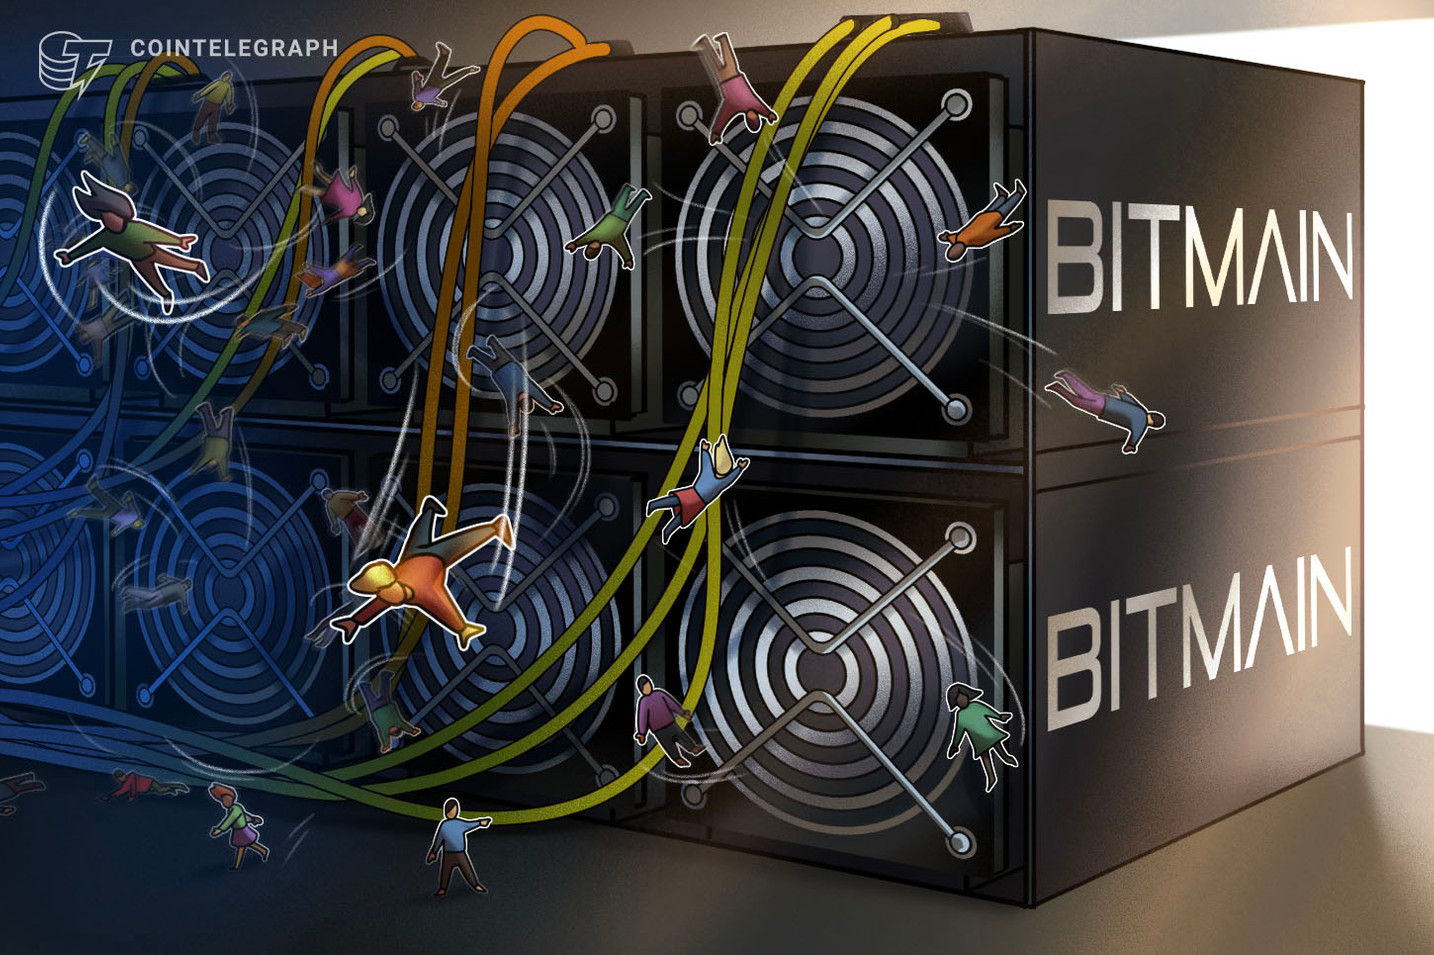 Bitmain Delays Antminer Shipments Amid Internal Conflicts